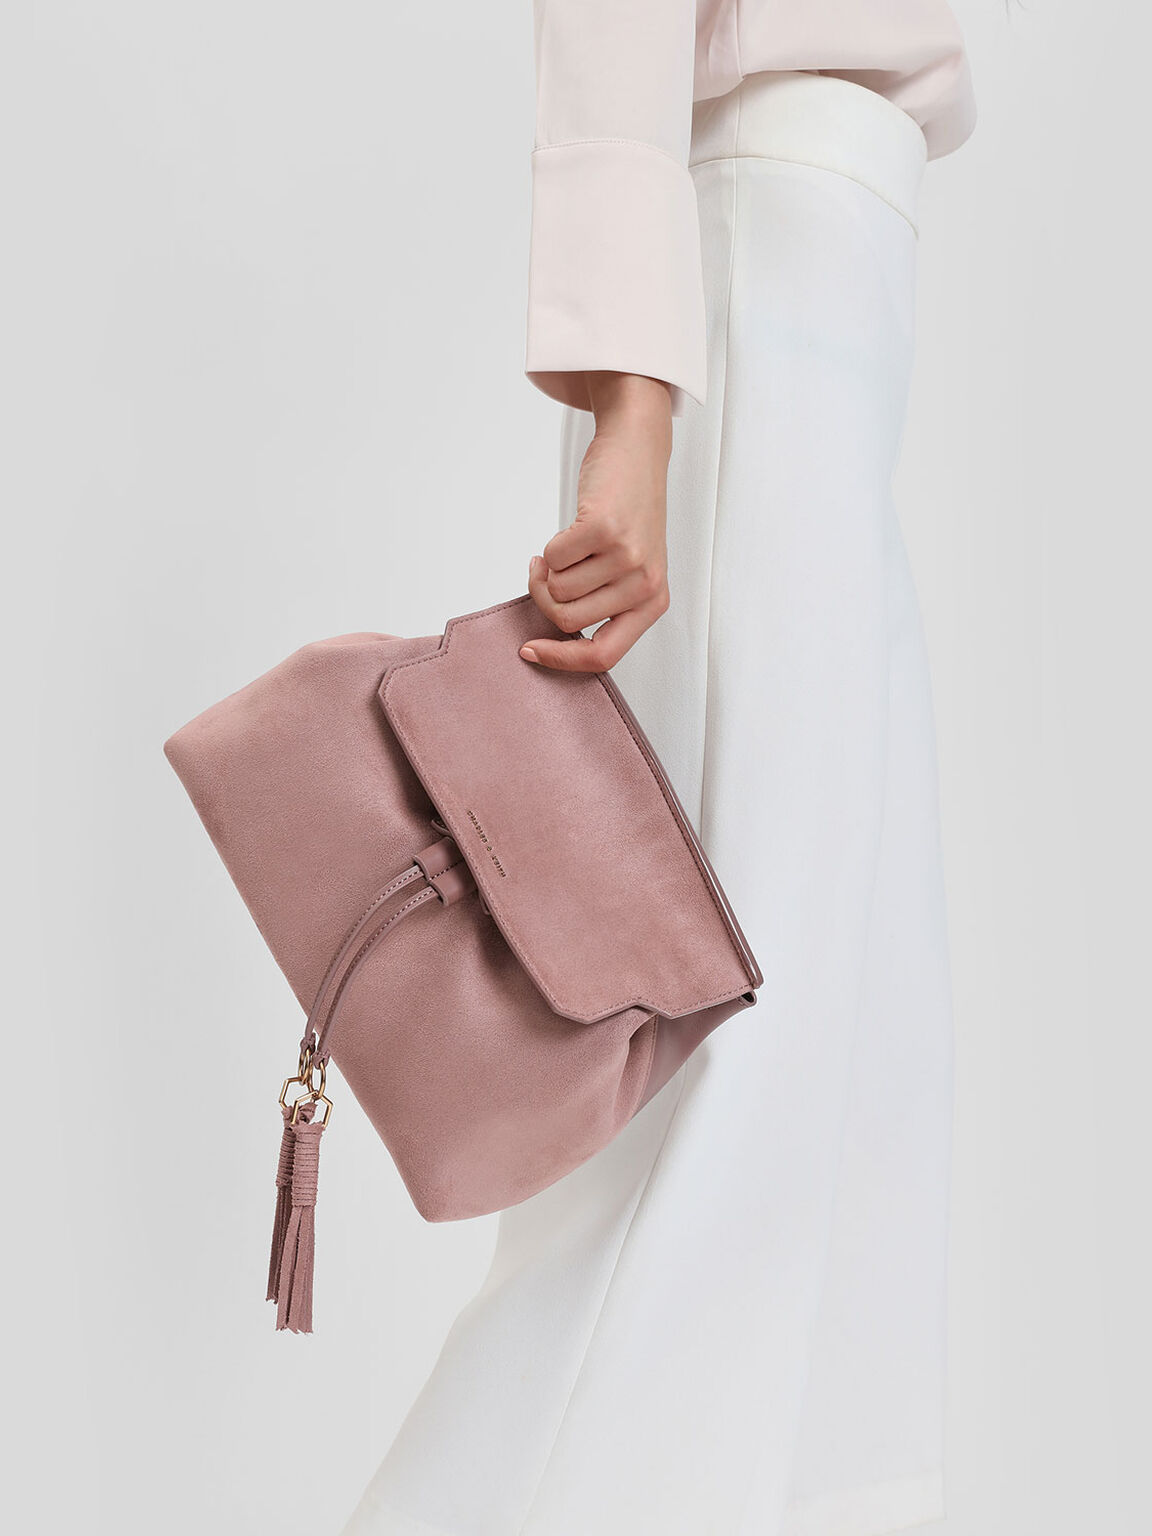 Tassel Detail Front Flap Backpack, Mauve, hi-res